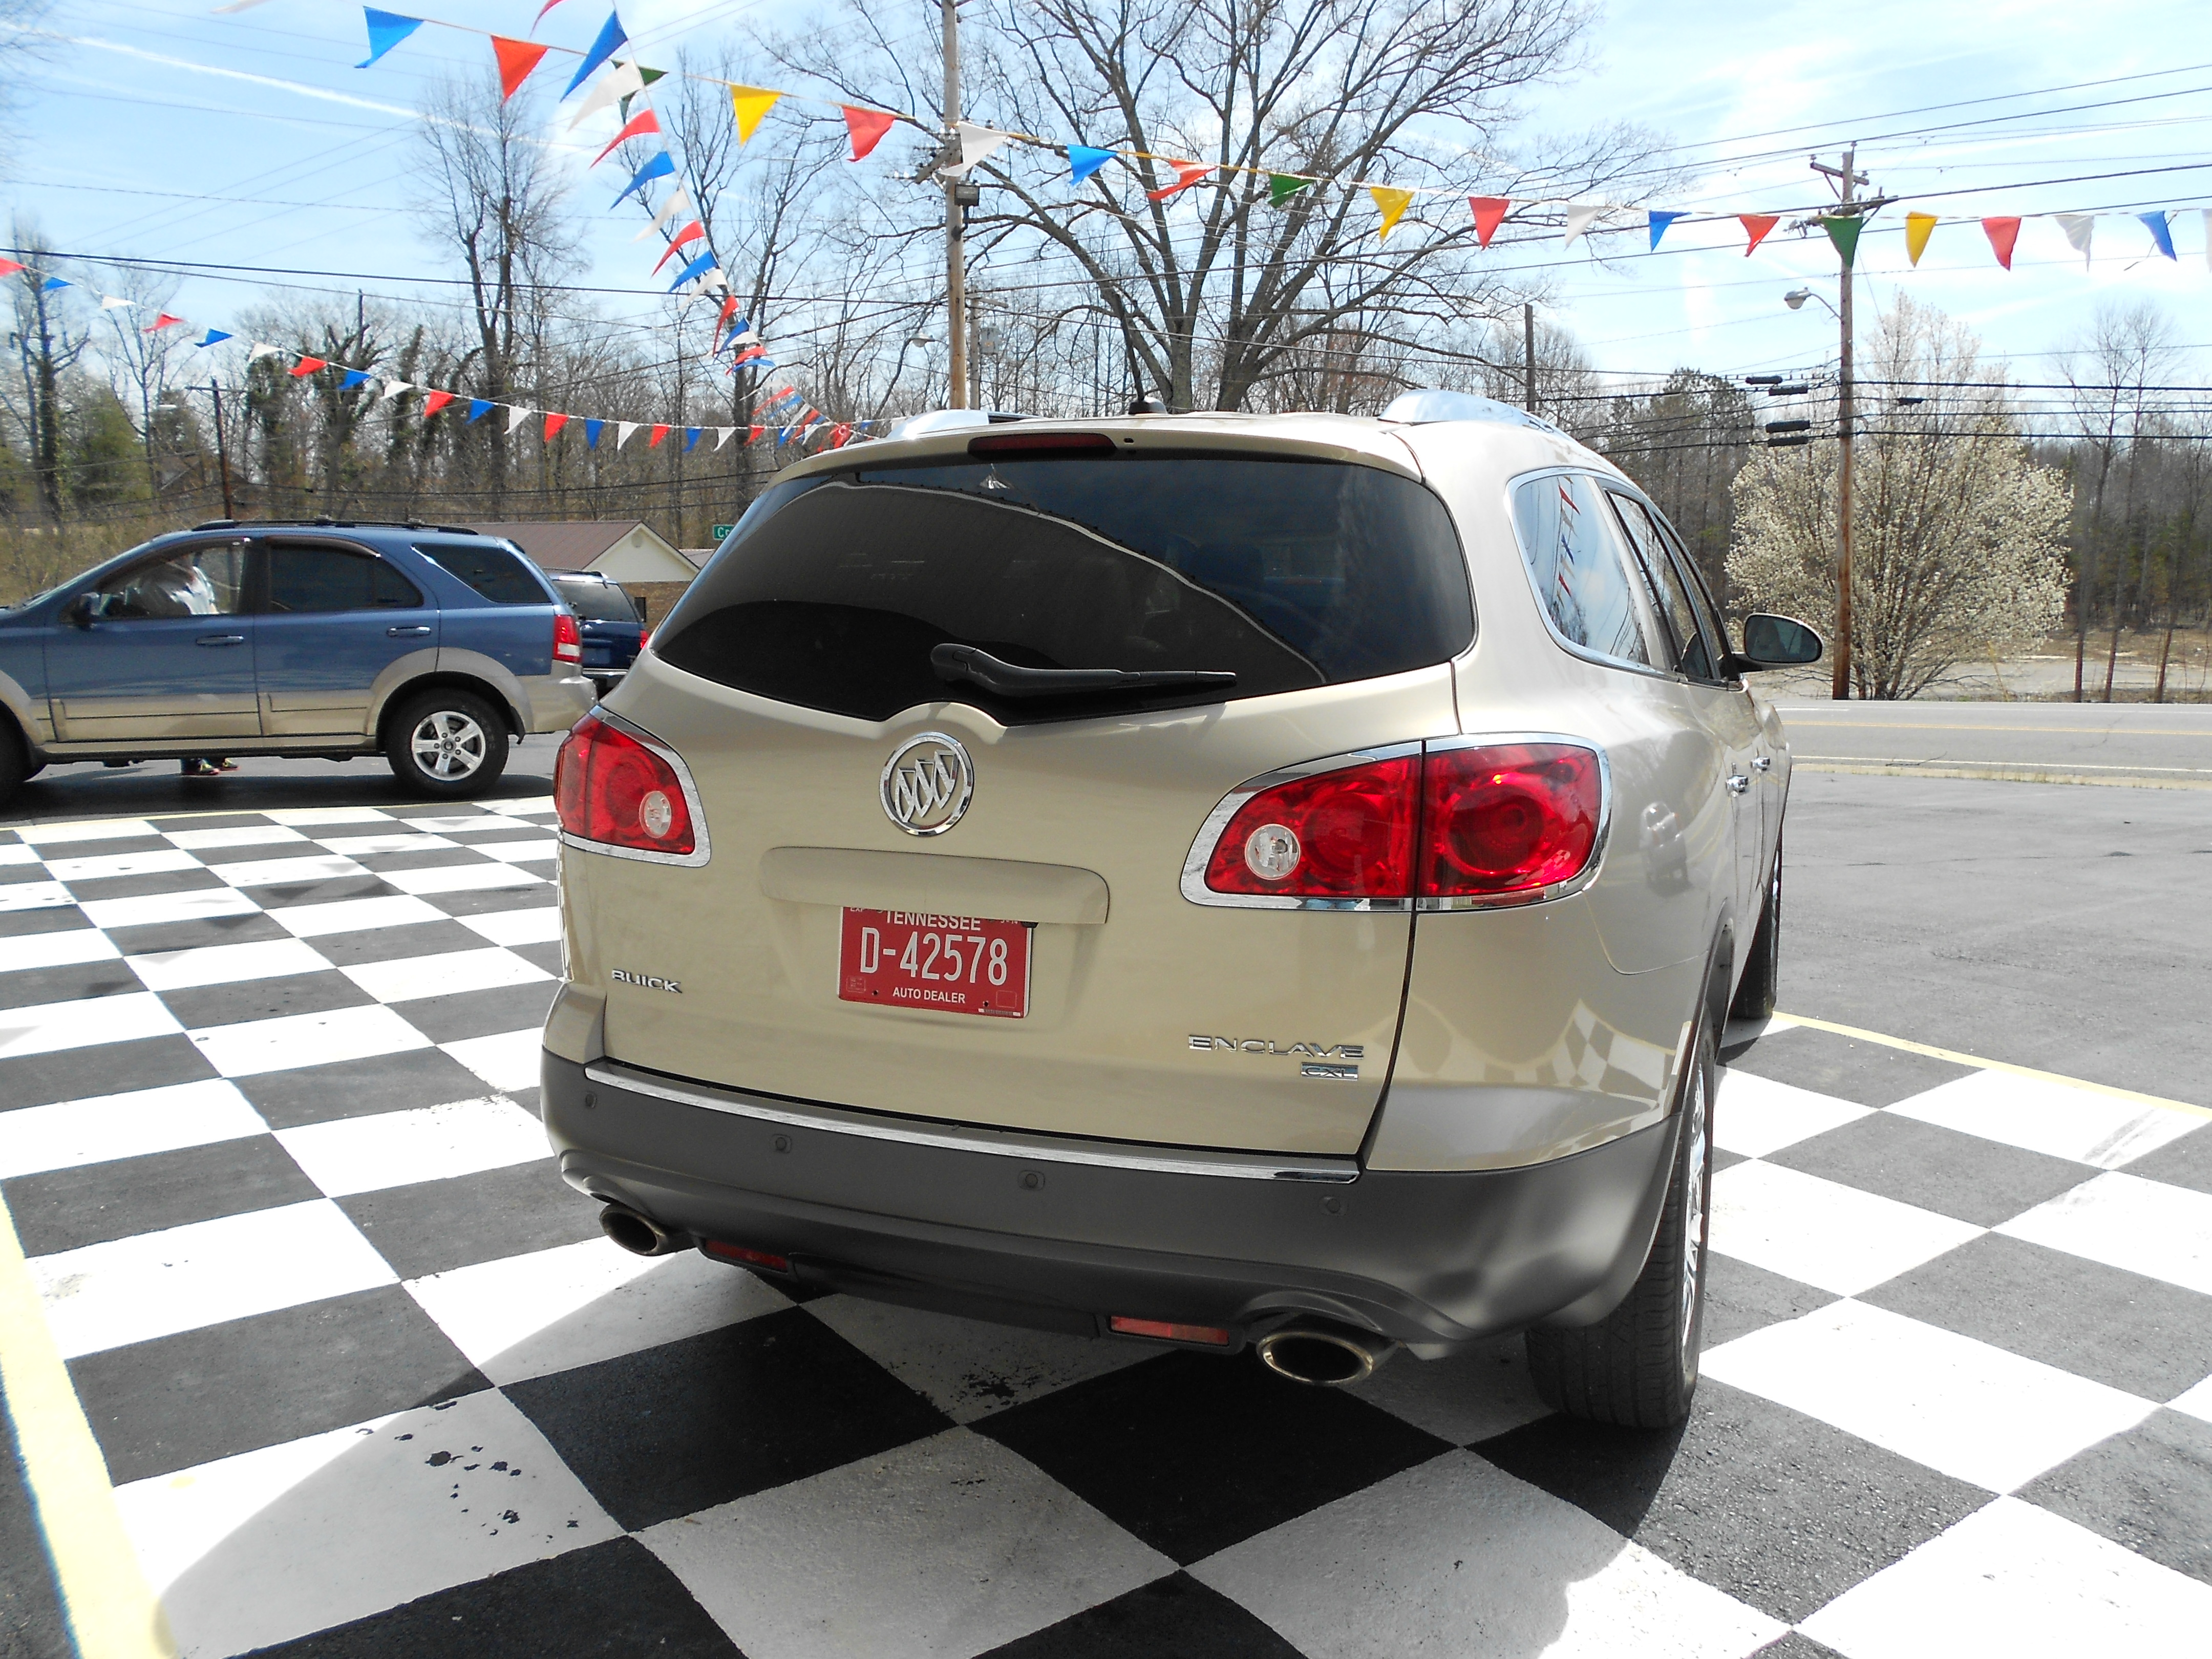 avenir new enclave gmc awd vehicledetails mi floor buick in dearborn for sale superior mats